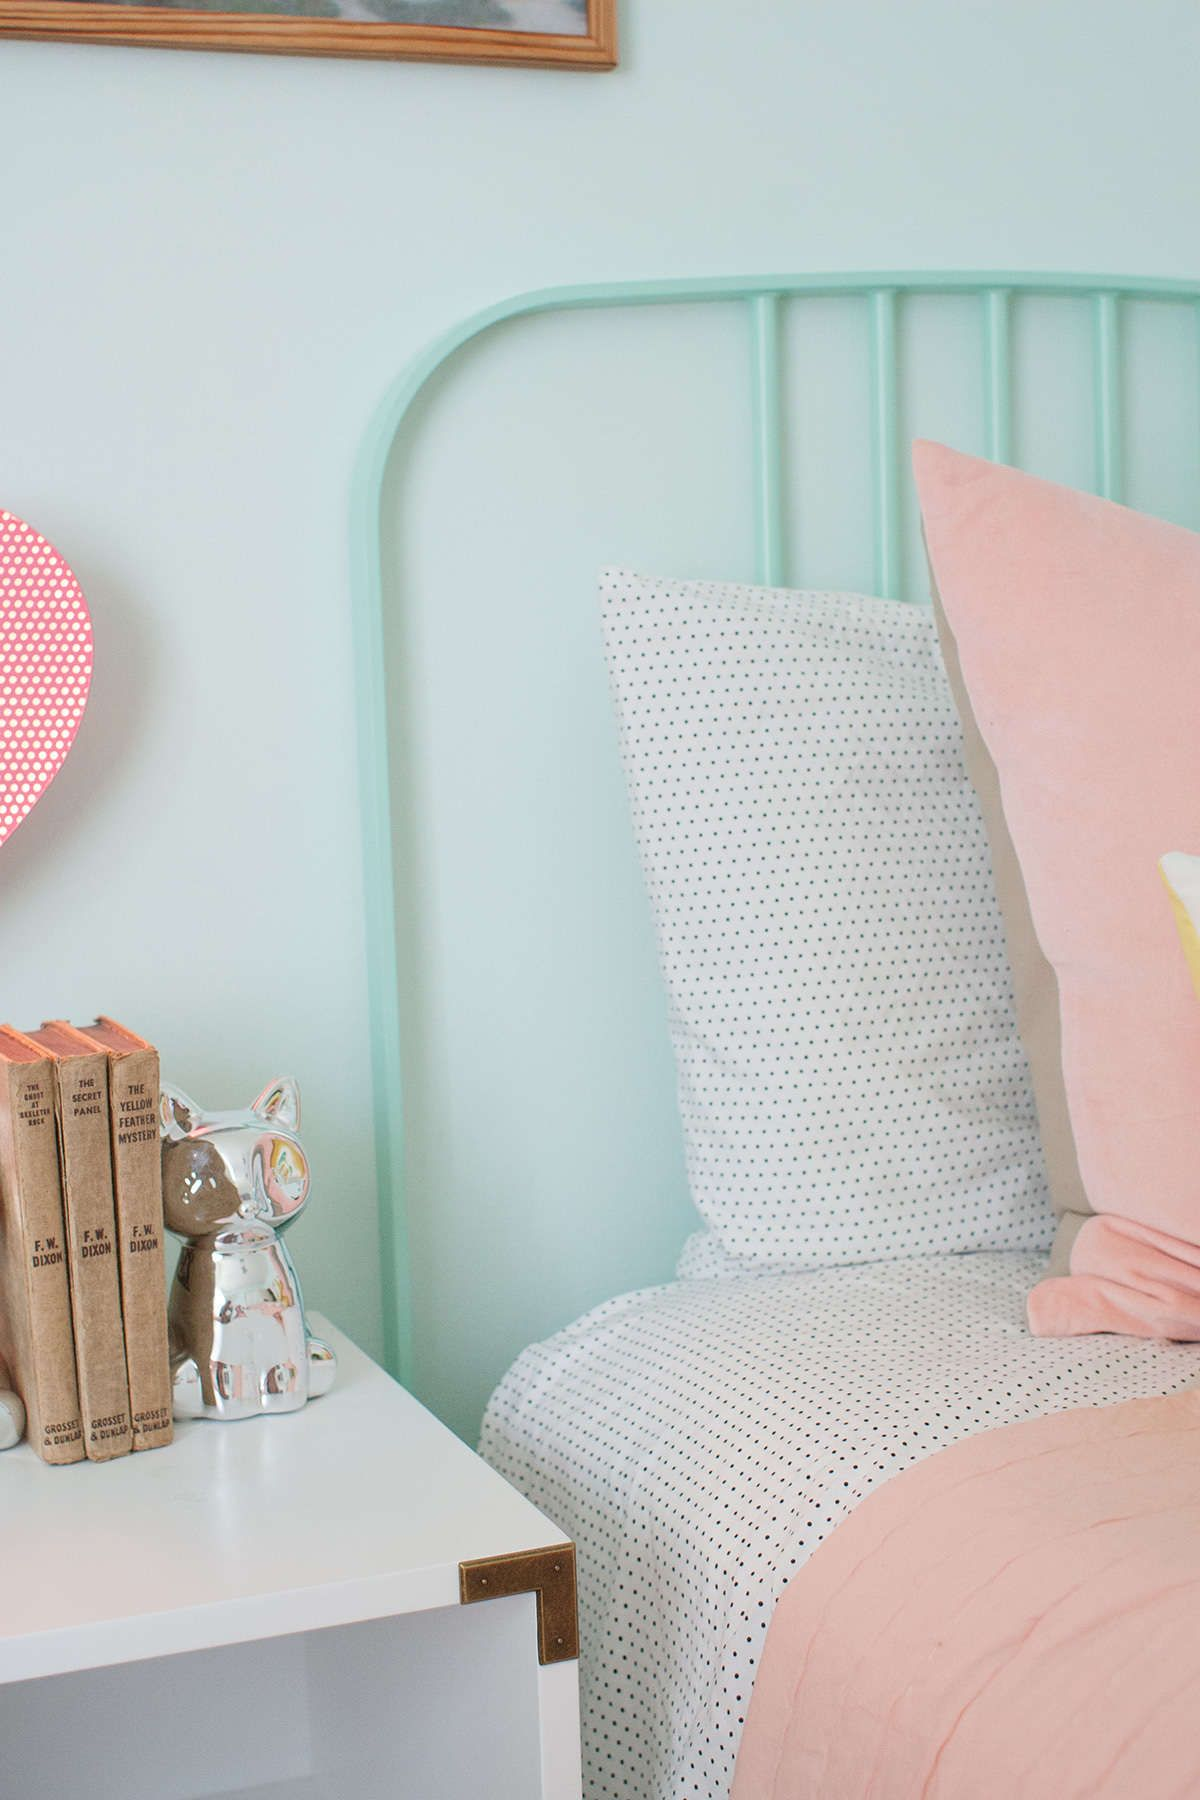 Shared Room Inspiration With The Land Of Nod Room